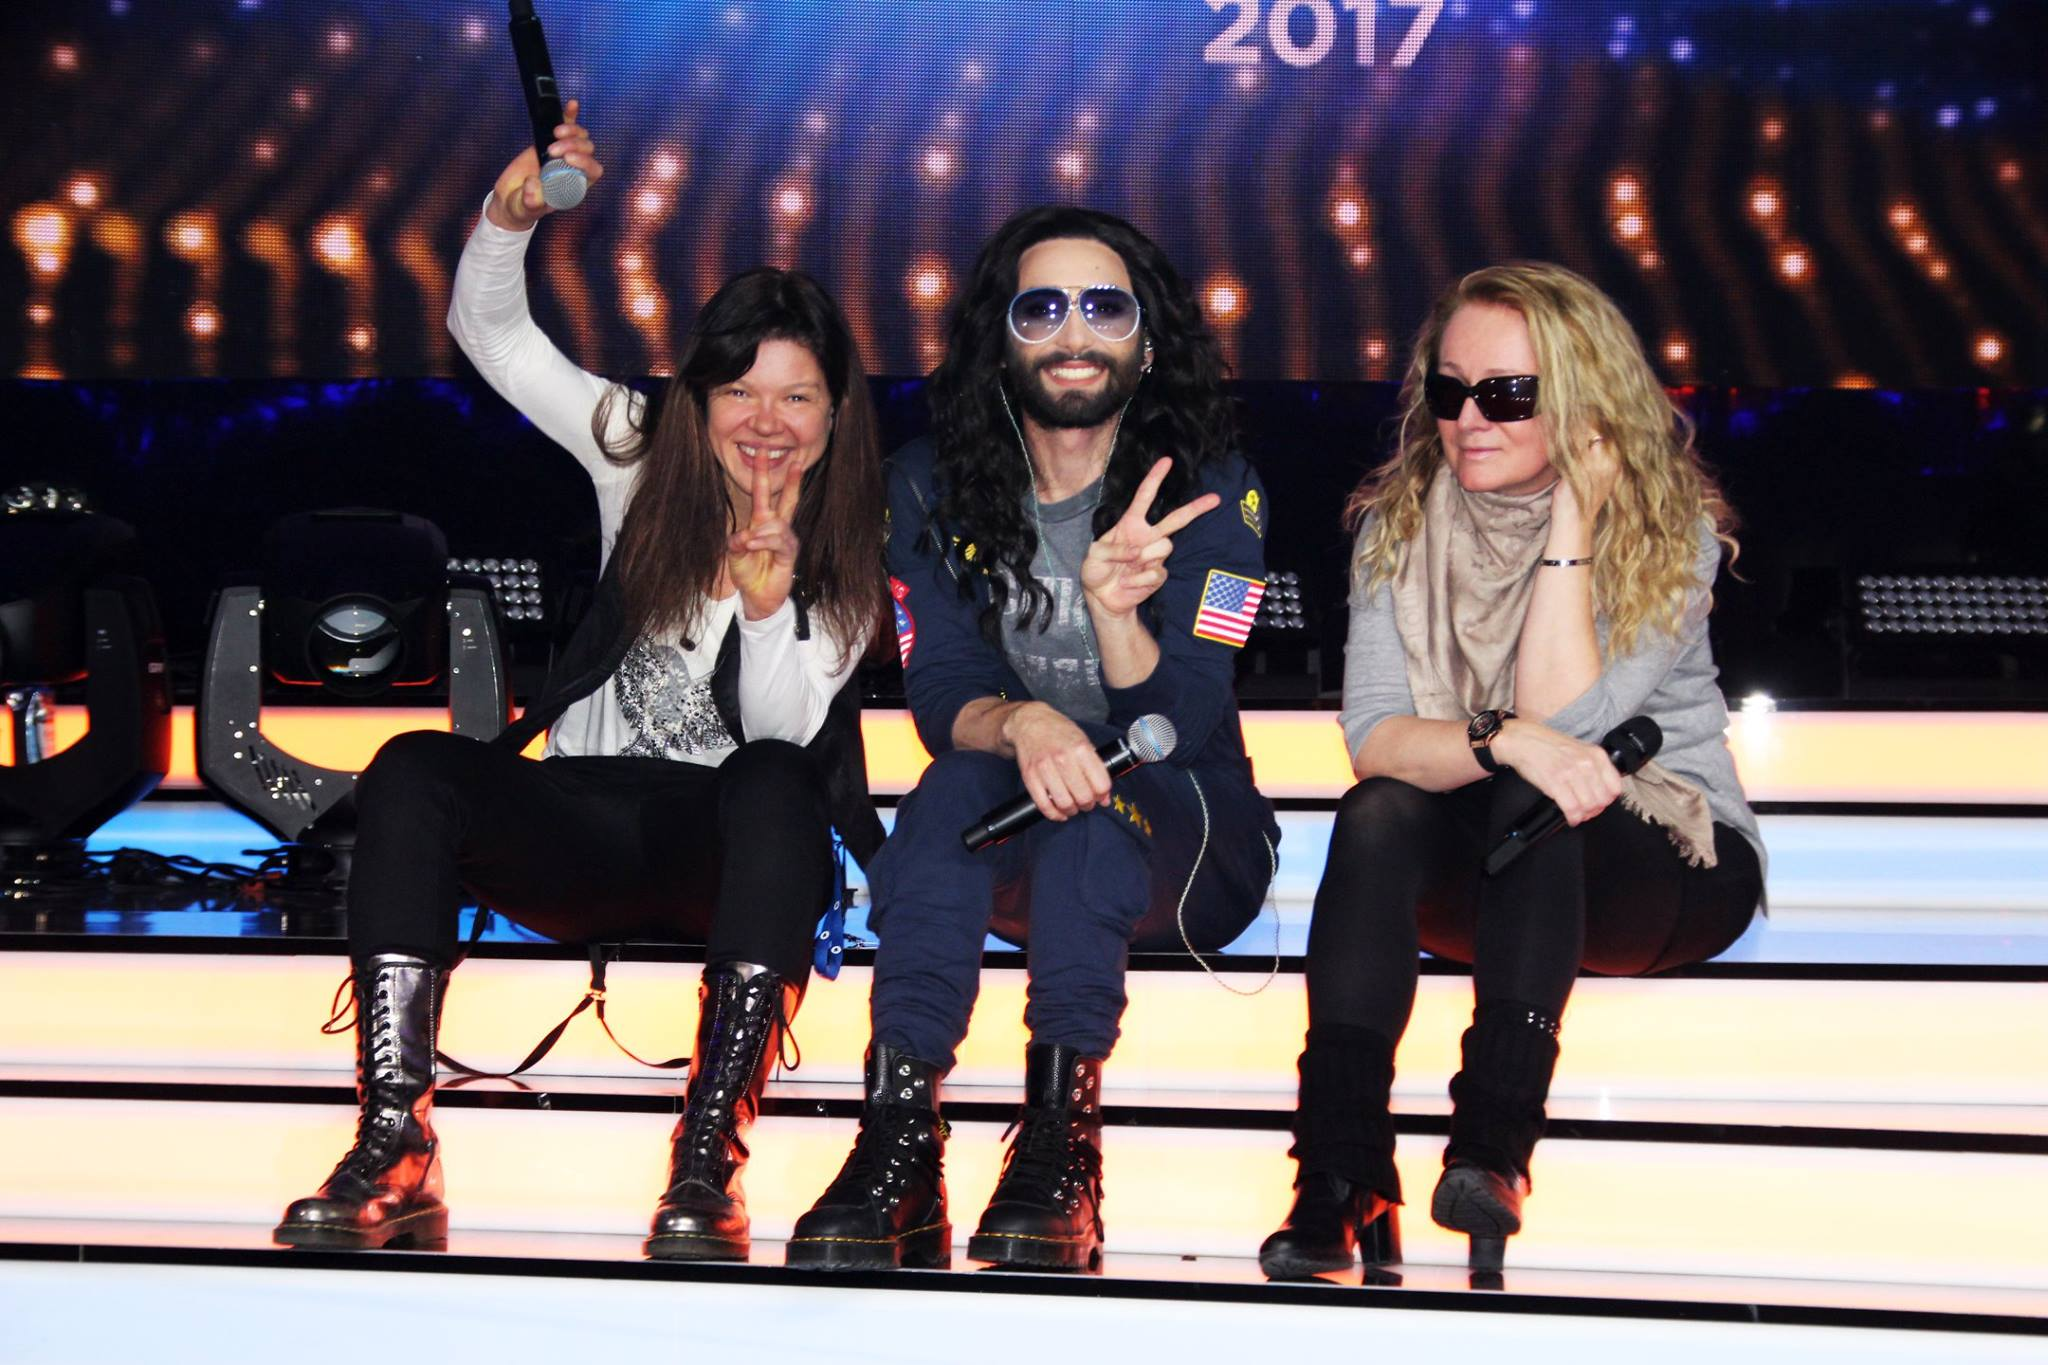 Germany 2017: photo impressions from Ruslana, Conchita & Nicole at Unser Song